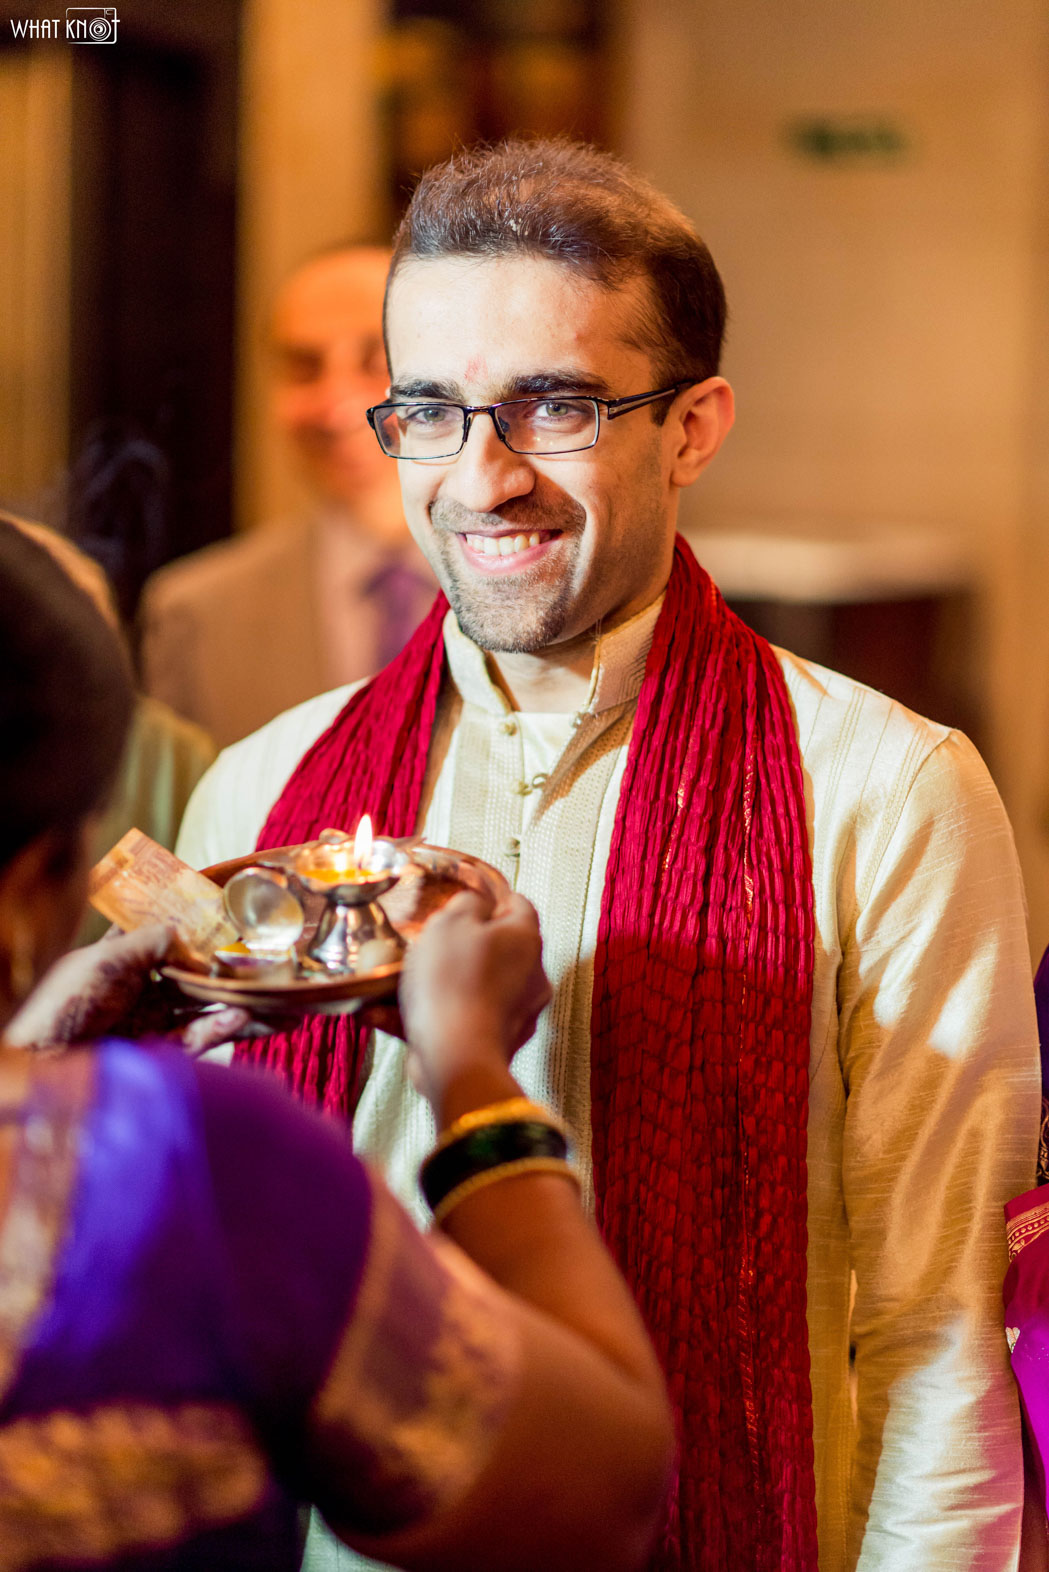 Candid-Wedding-Photography-WhatKnot-Marathi-74